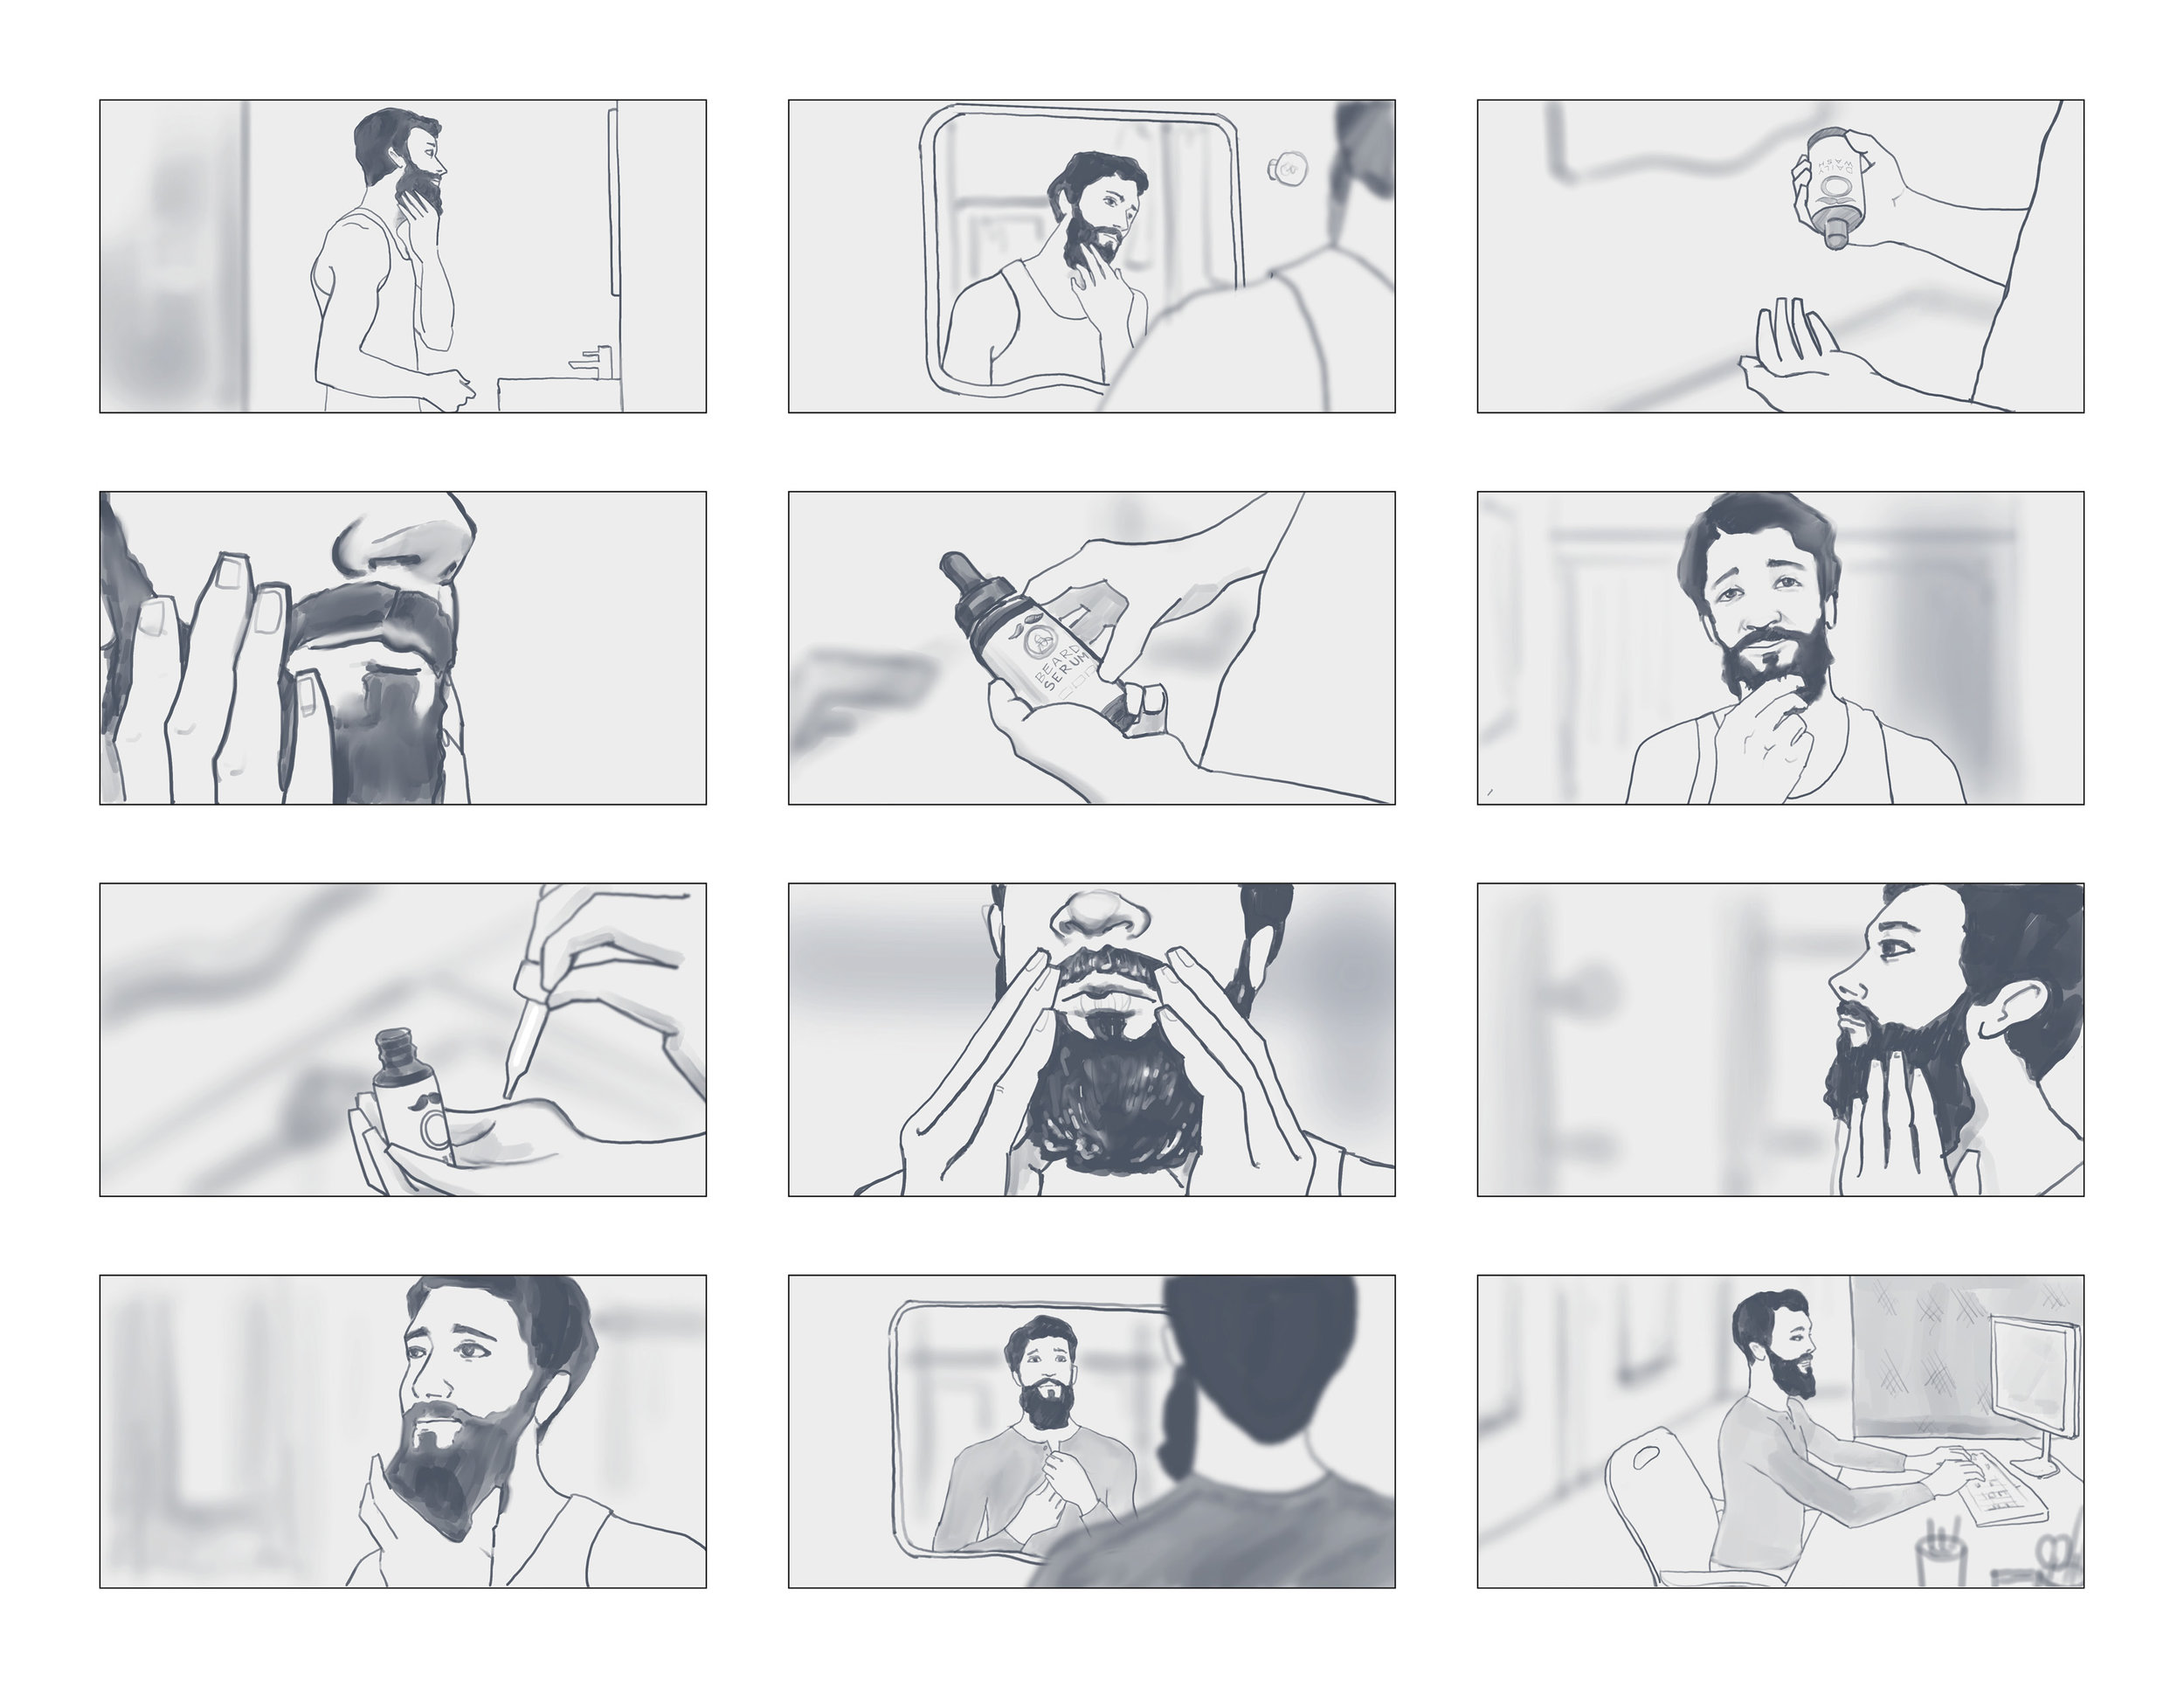 storyboards_for sq space2.jpg